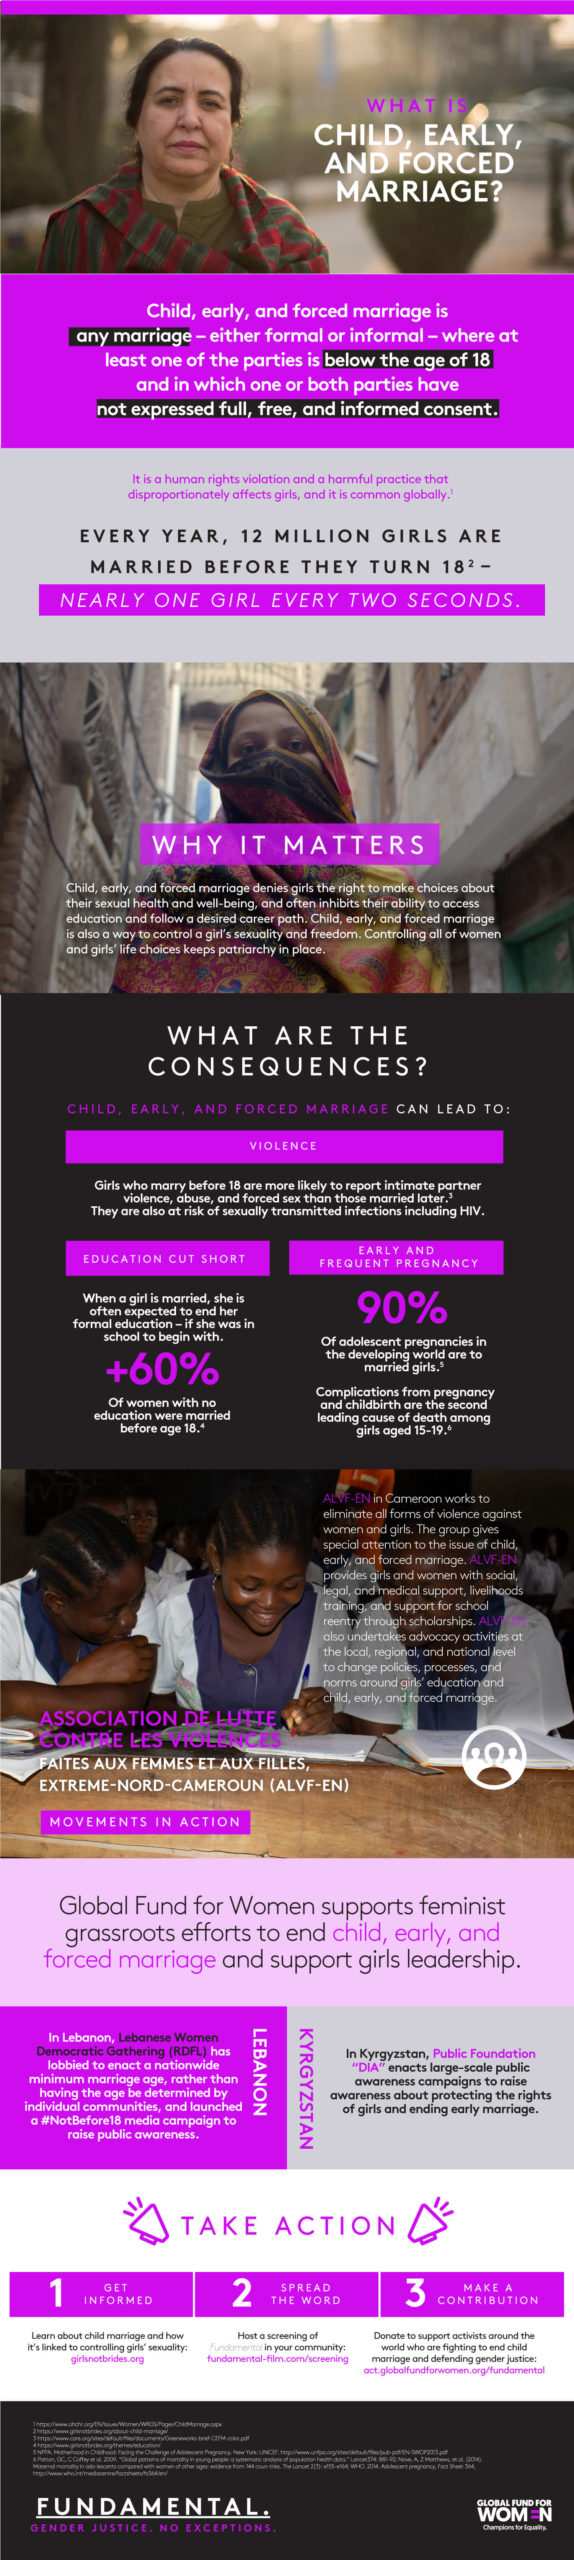 Fundamental_child-early-forced-marriage-infographic-full